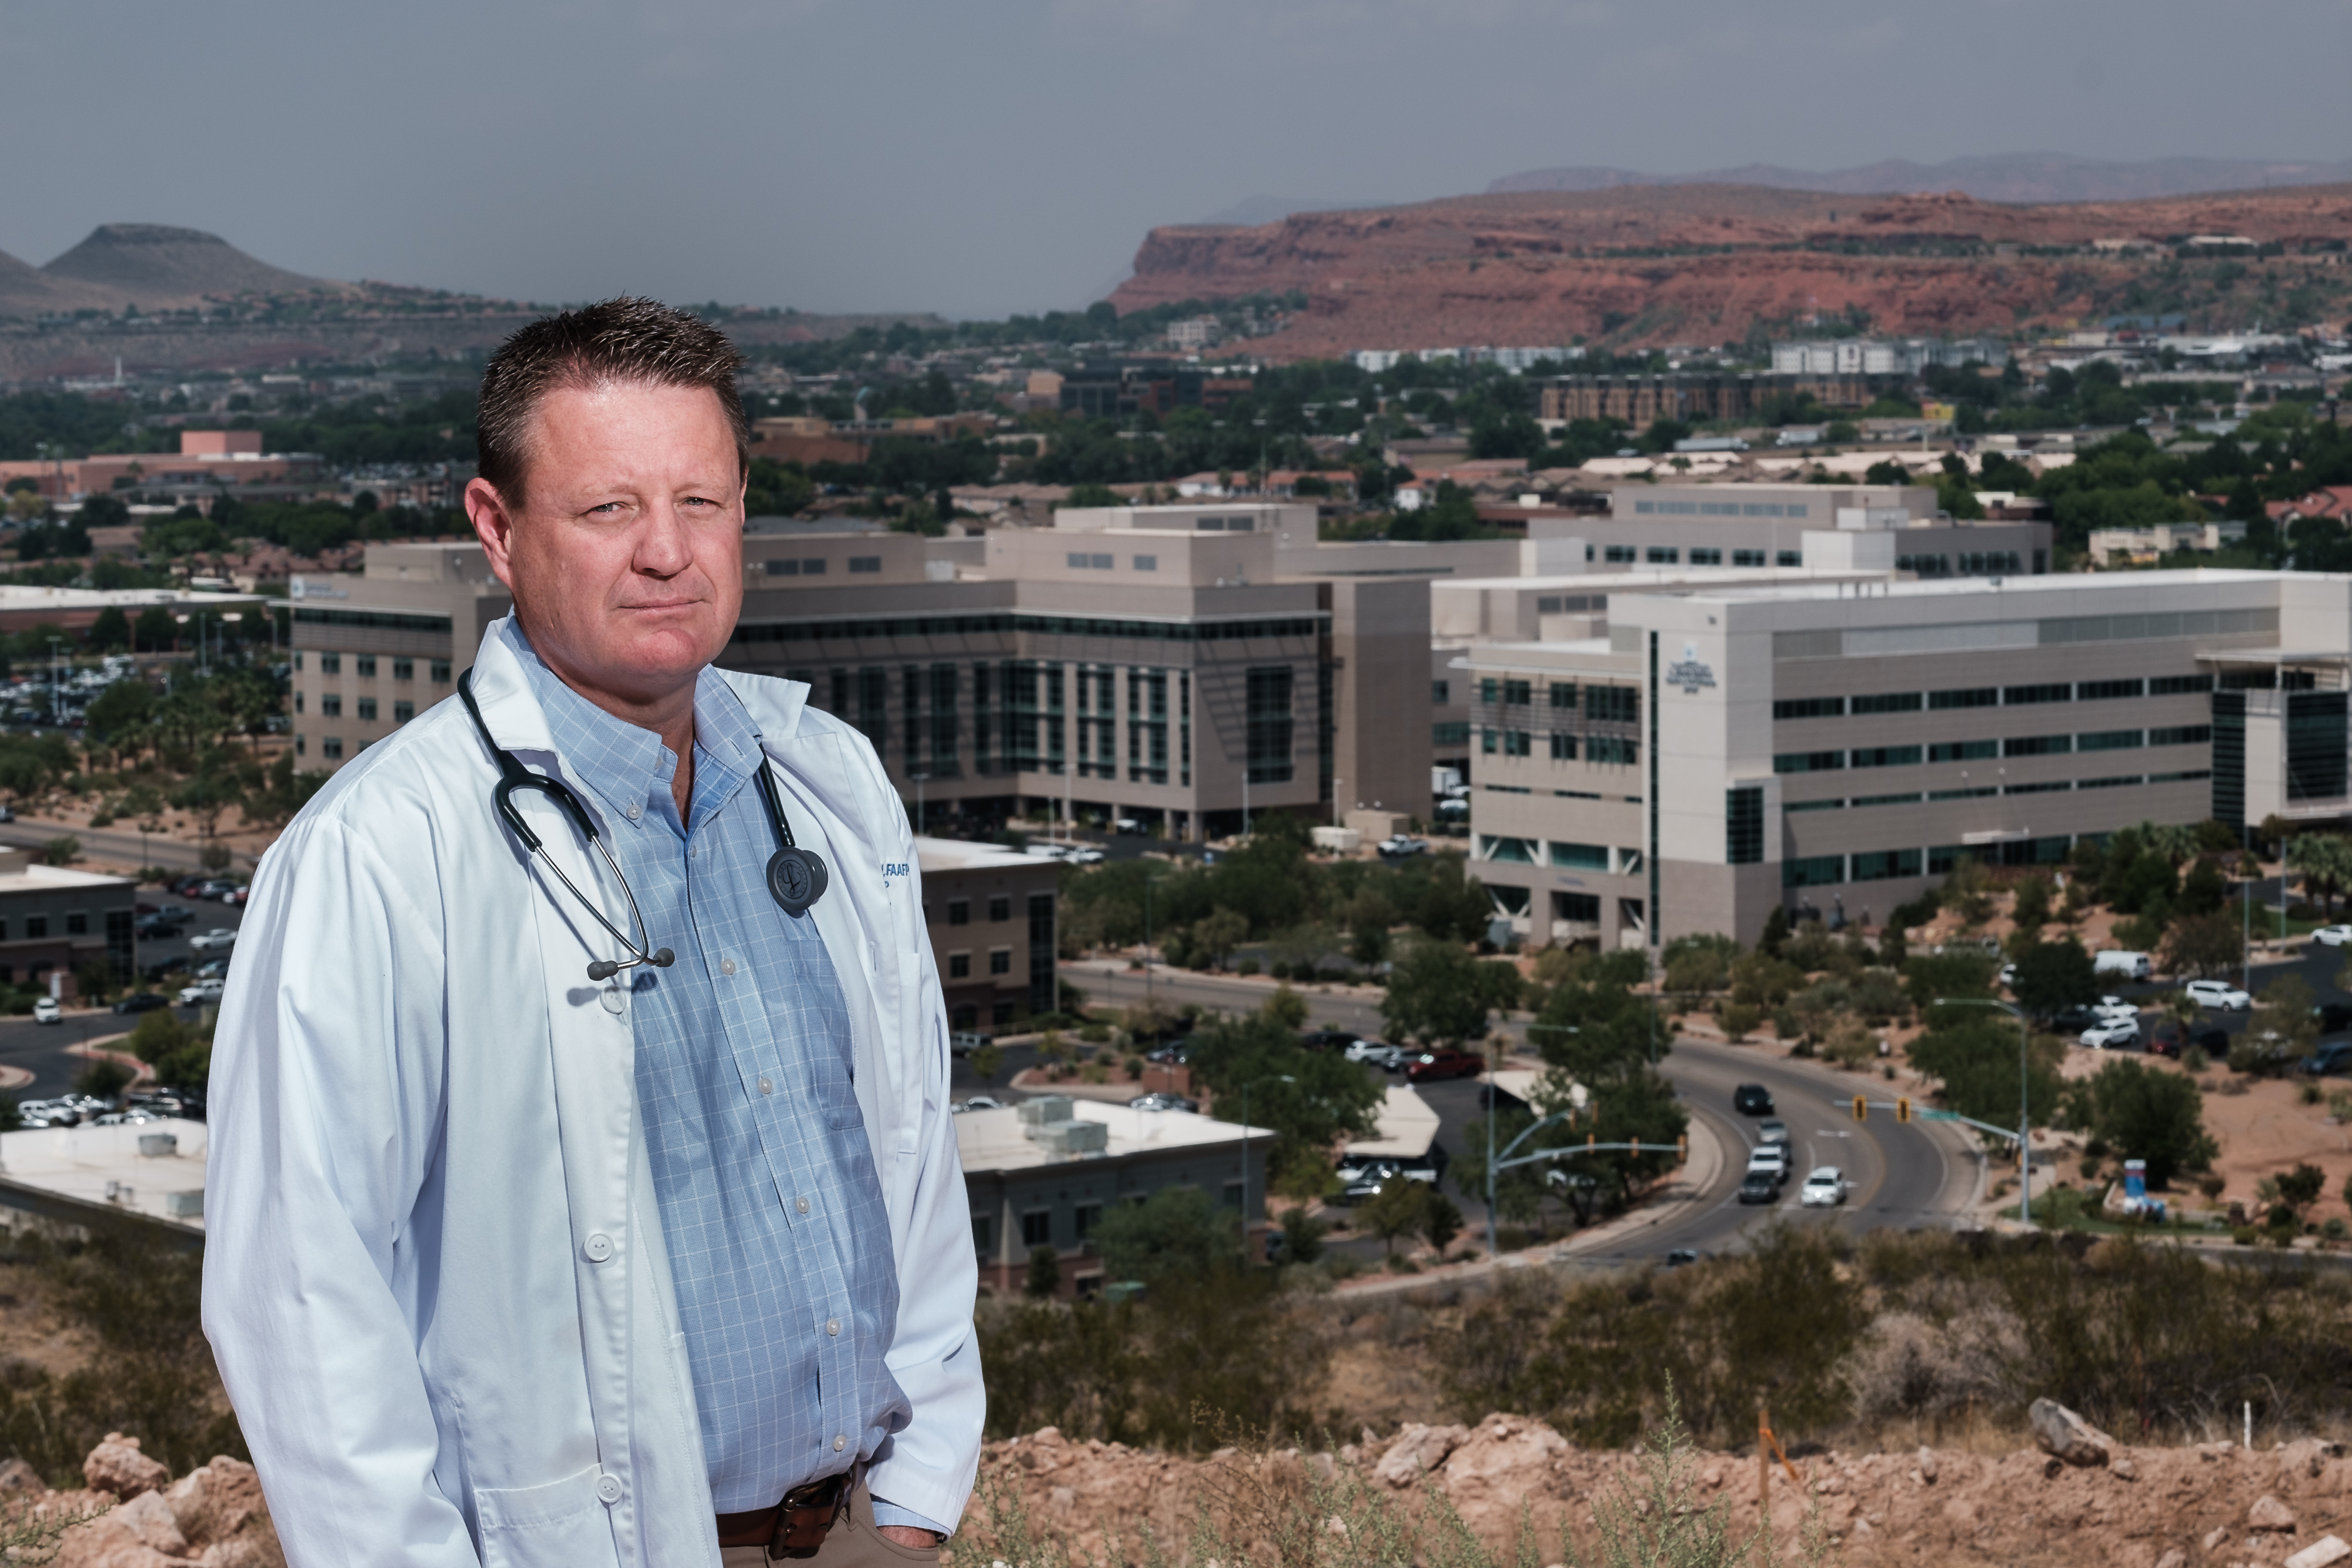 Dr. David Grygla, hospitalist at a St. George hospital, poses for a portrait with the St. George skyline behind him.